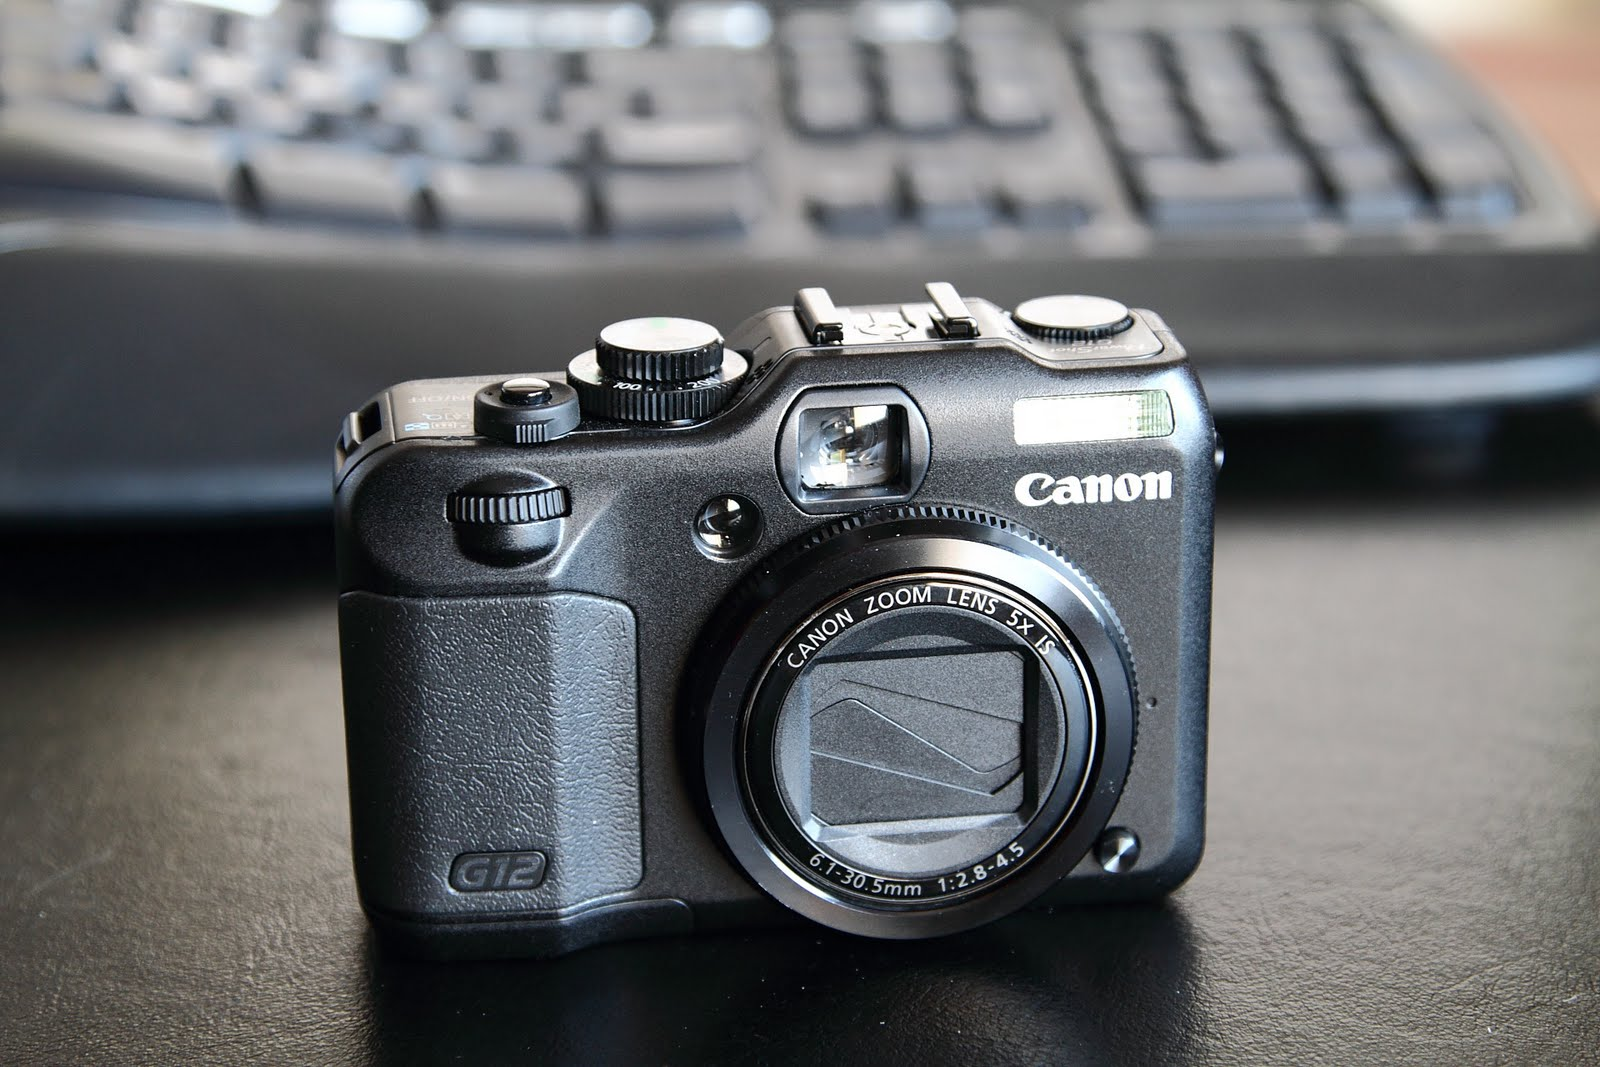 about photography the canon g12 compact camera. Black Bedroom Furniture Sets. Home Design Ideas